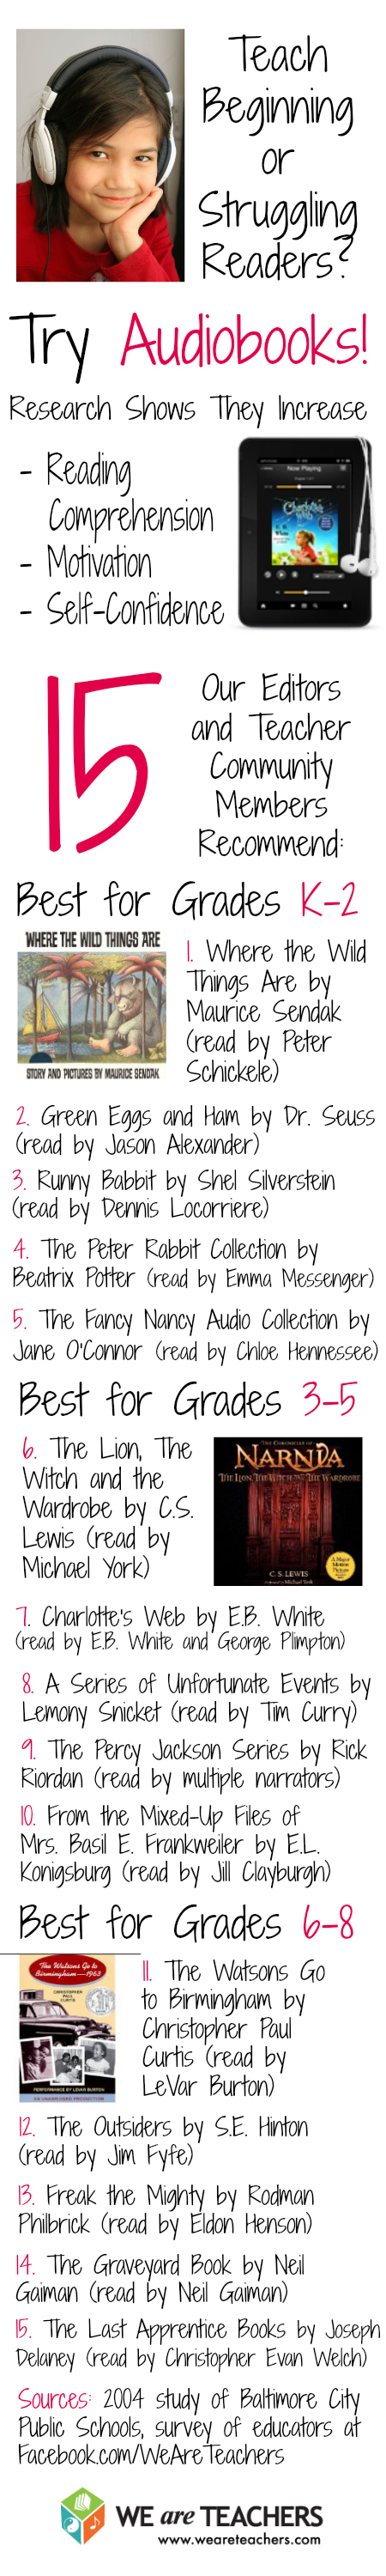 audiobooks for students